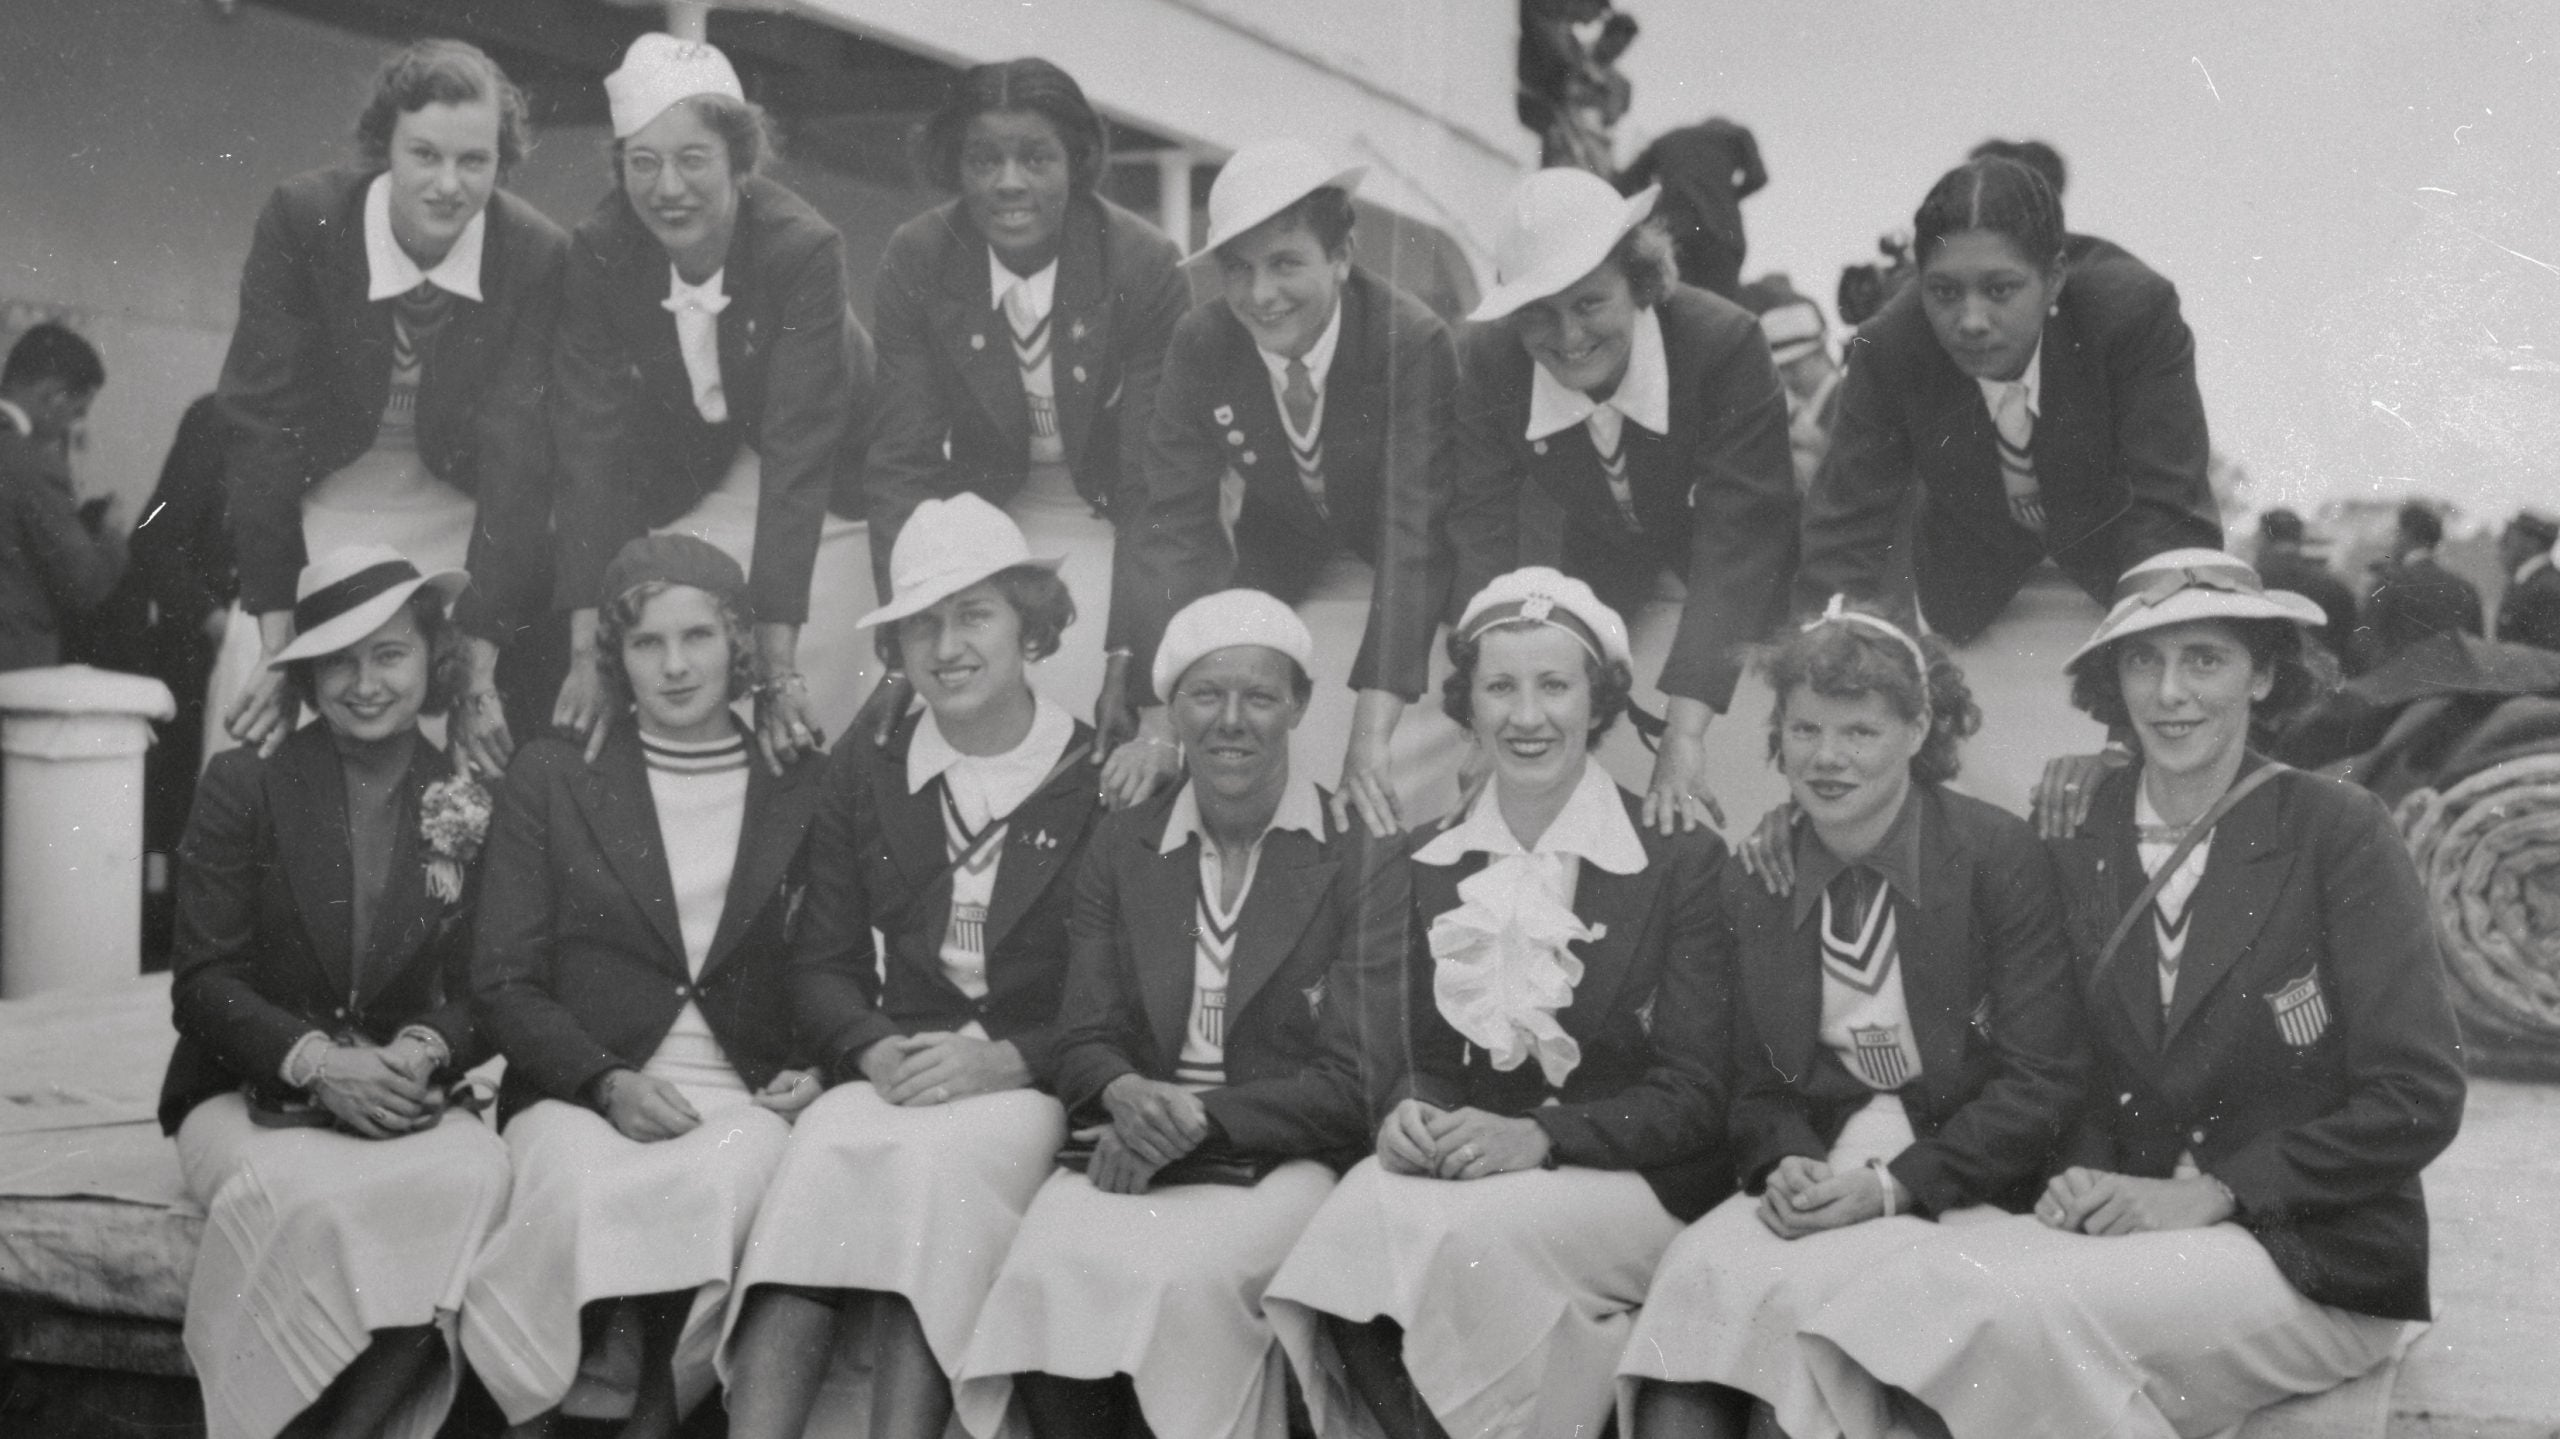 Beyond The Gold: Deborah Riley Draper Revisits The Racial Wins At The 1936 Olympics In Updated Book